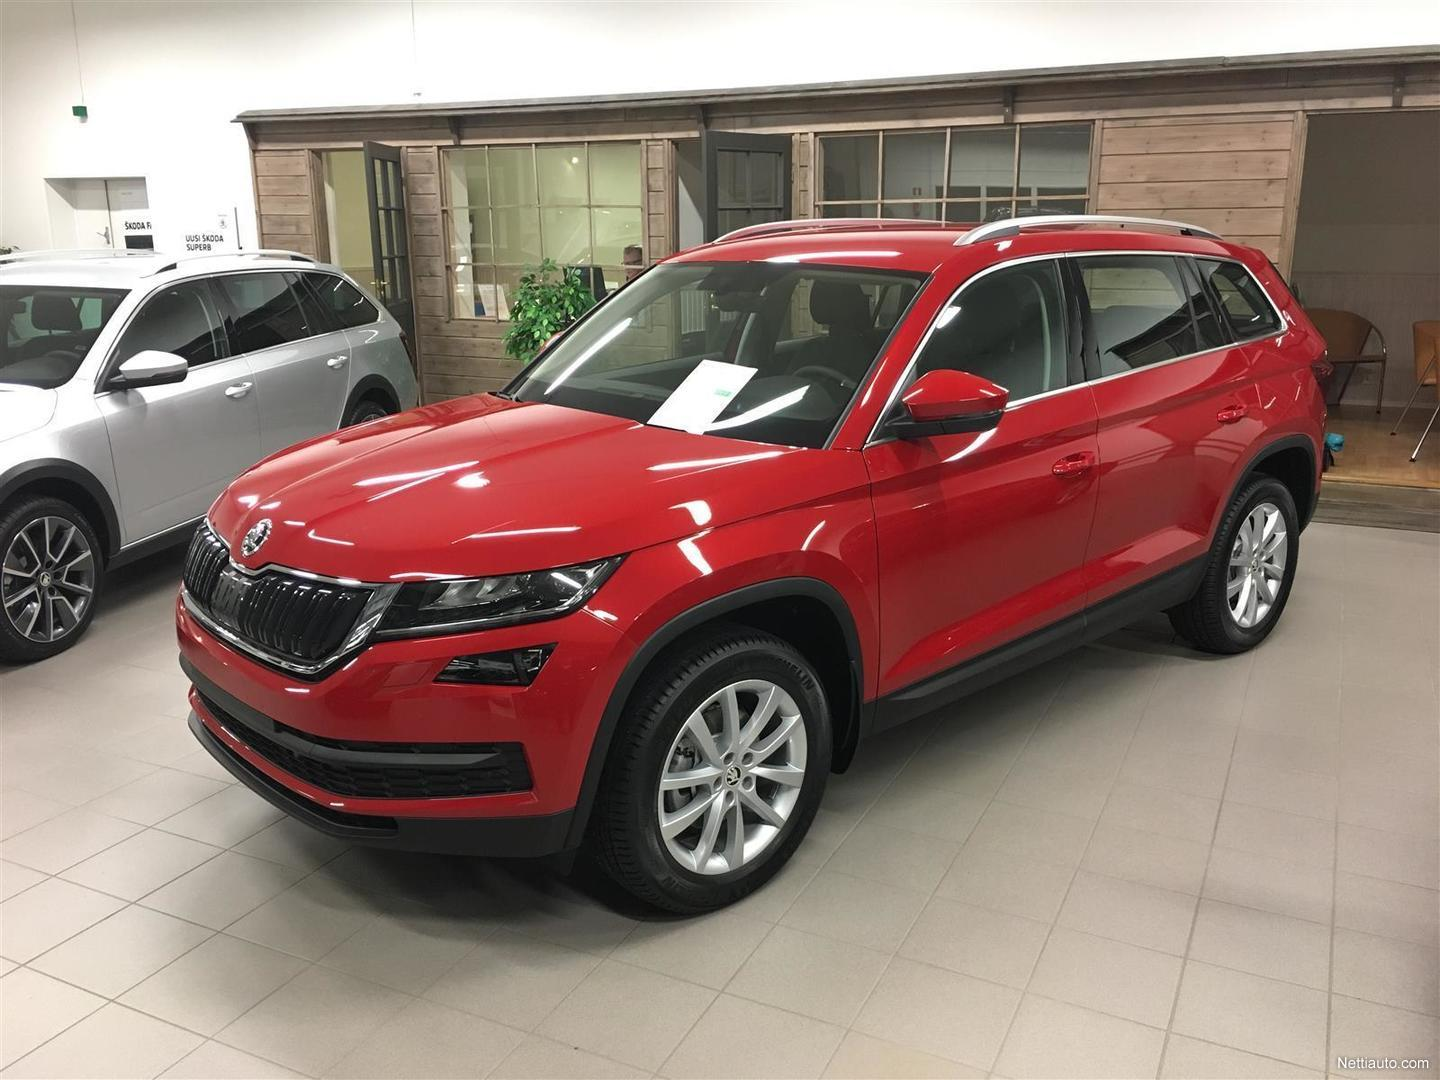 skoda kodiaq 1 4 tsi 4x4 ambition dsg autom 4x4 2018 used vehicle nettiauto. Black Bedroom Furniture Sets. Home Design Ideas